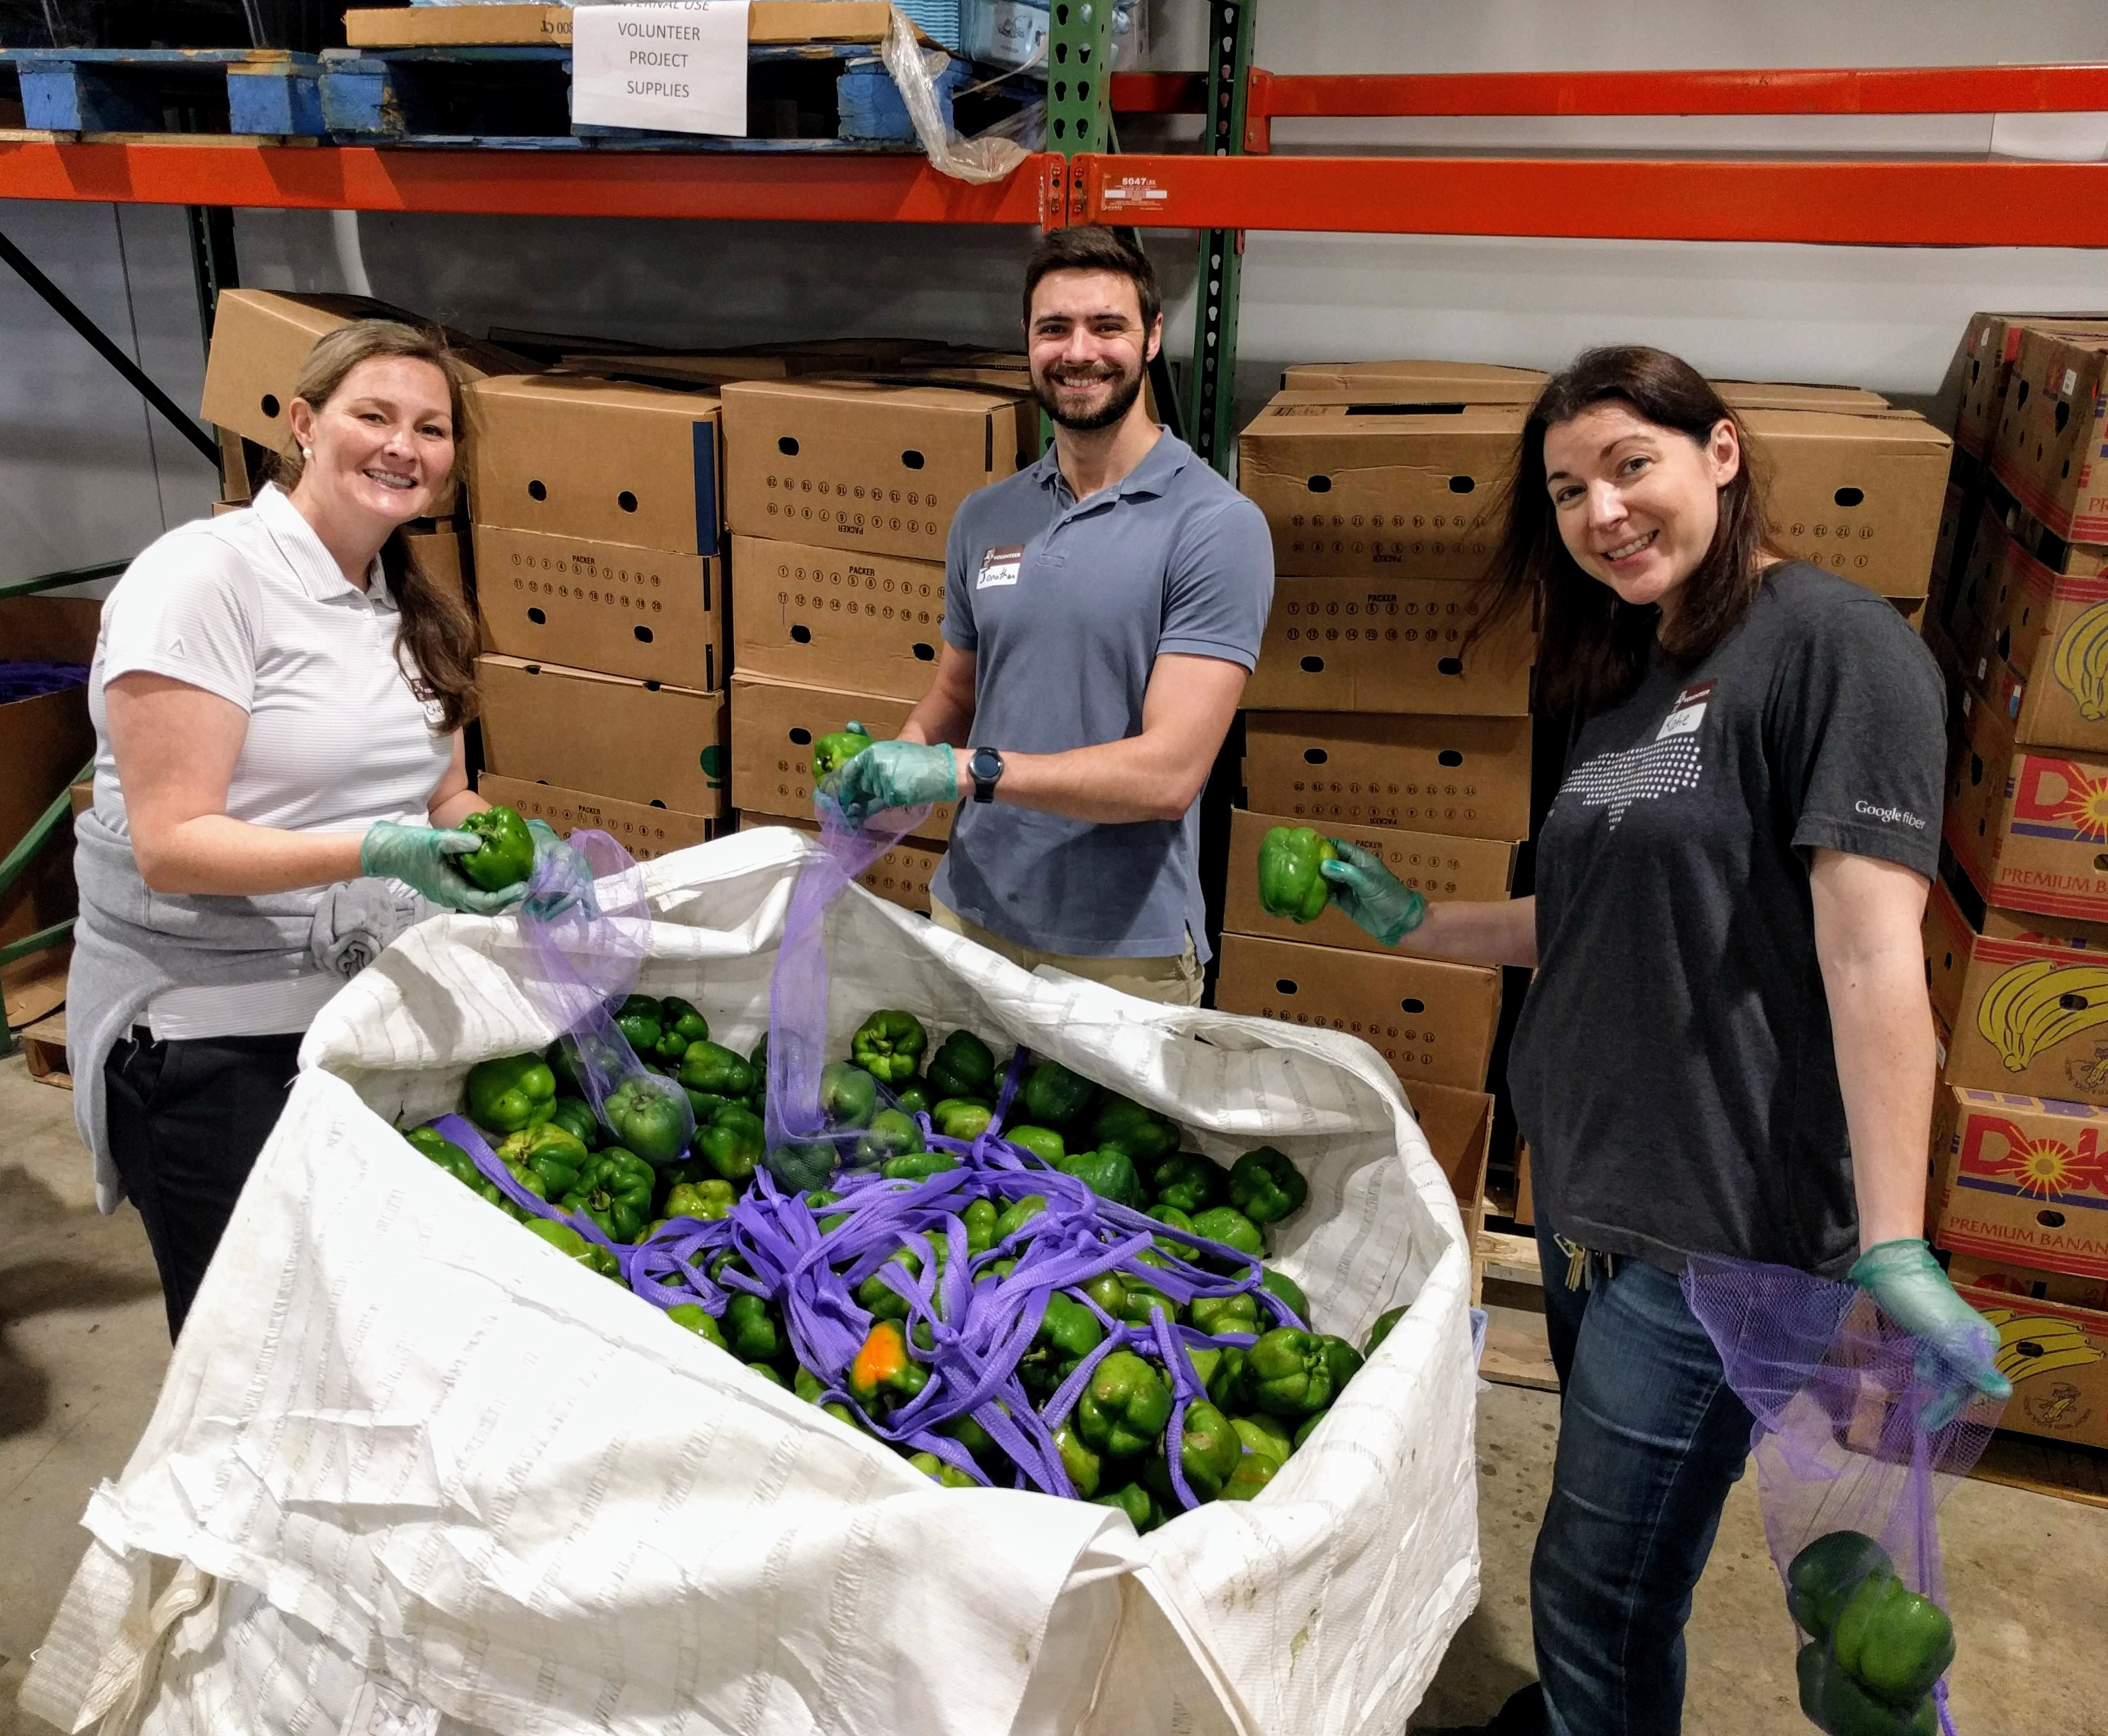 OIT staff stand next to a large bag of produce at the Food Bank of Central and Eastern North Carolina.